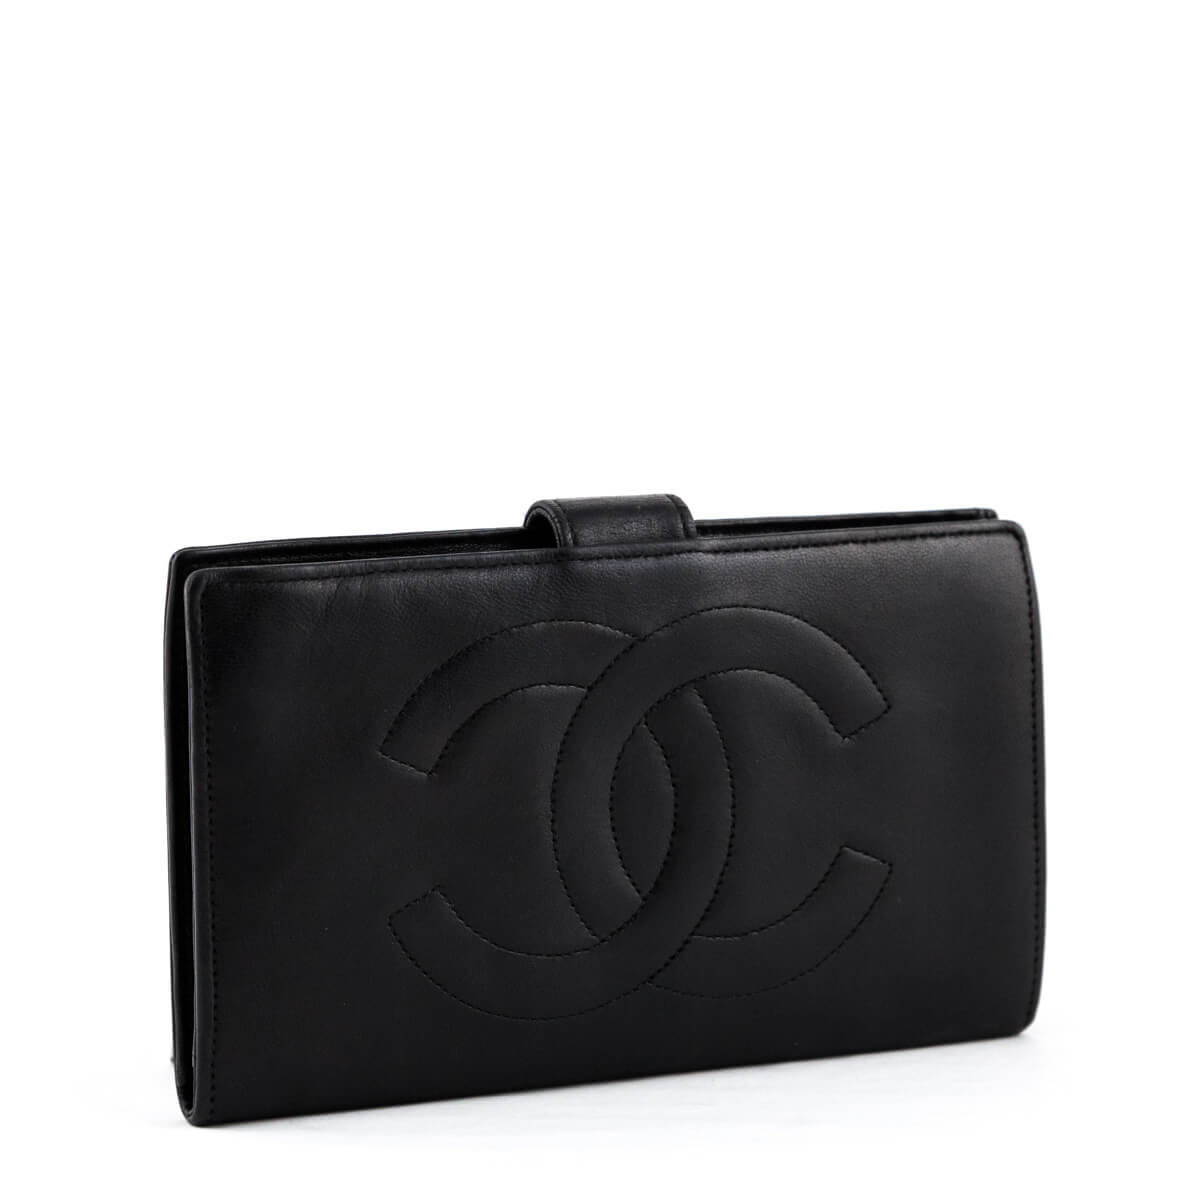 41f37480701af8 ... Chanel Black Lambskin Vintage Timeless French Purse Wallet - LOVE that  BAG - Preowned Authentic Designer ...